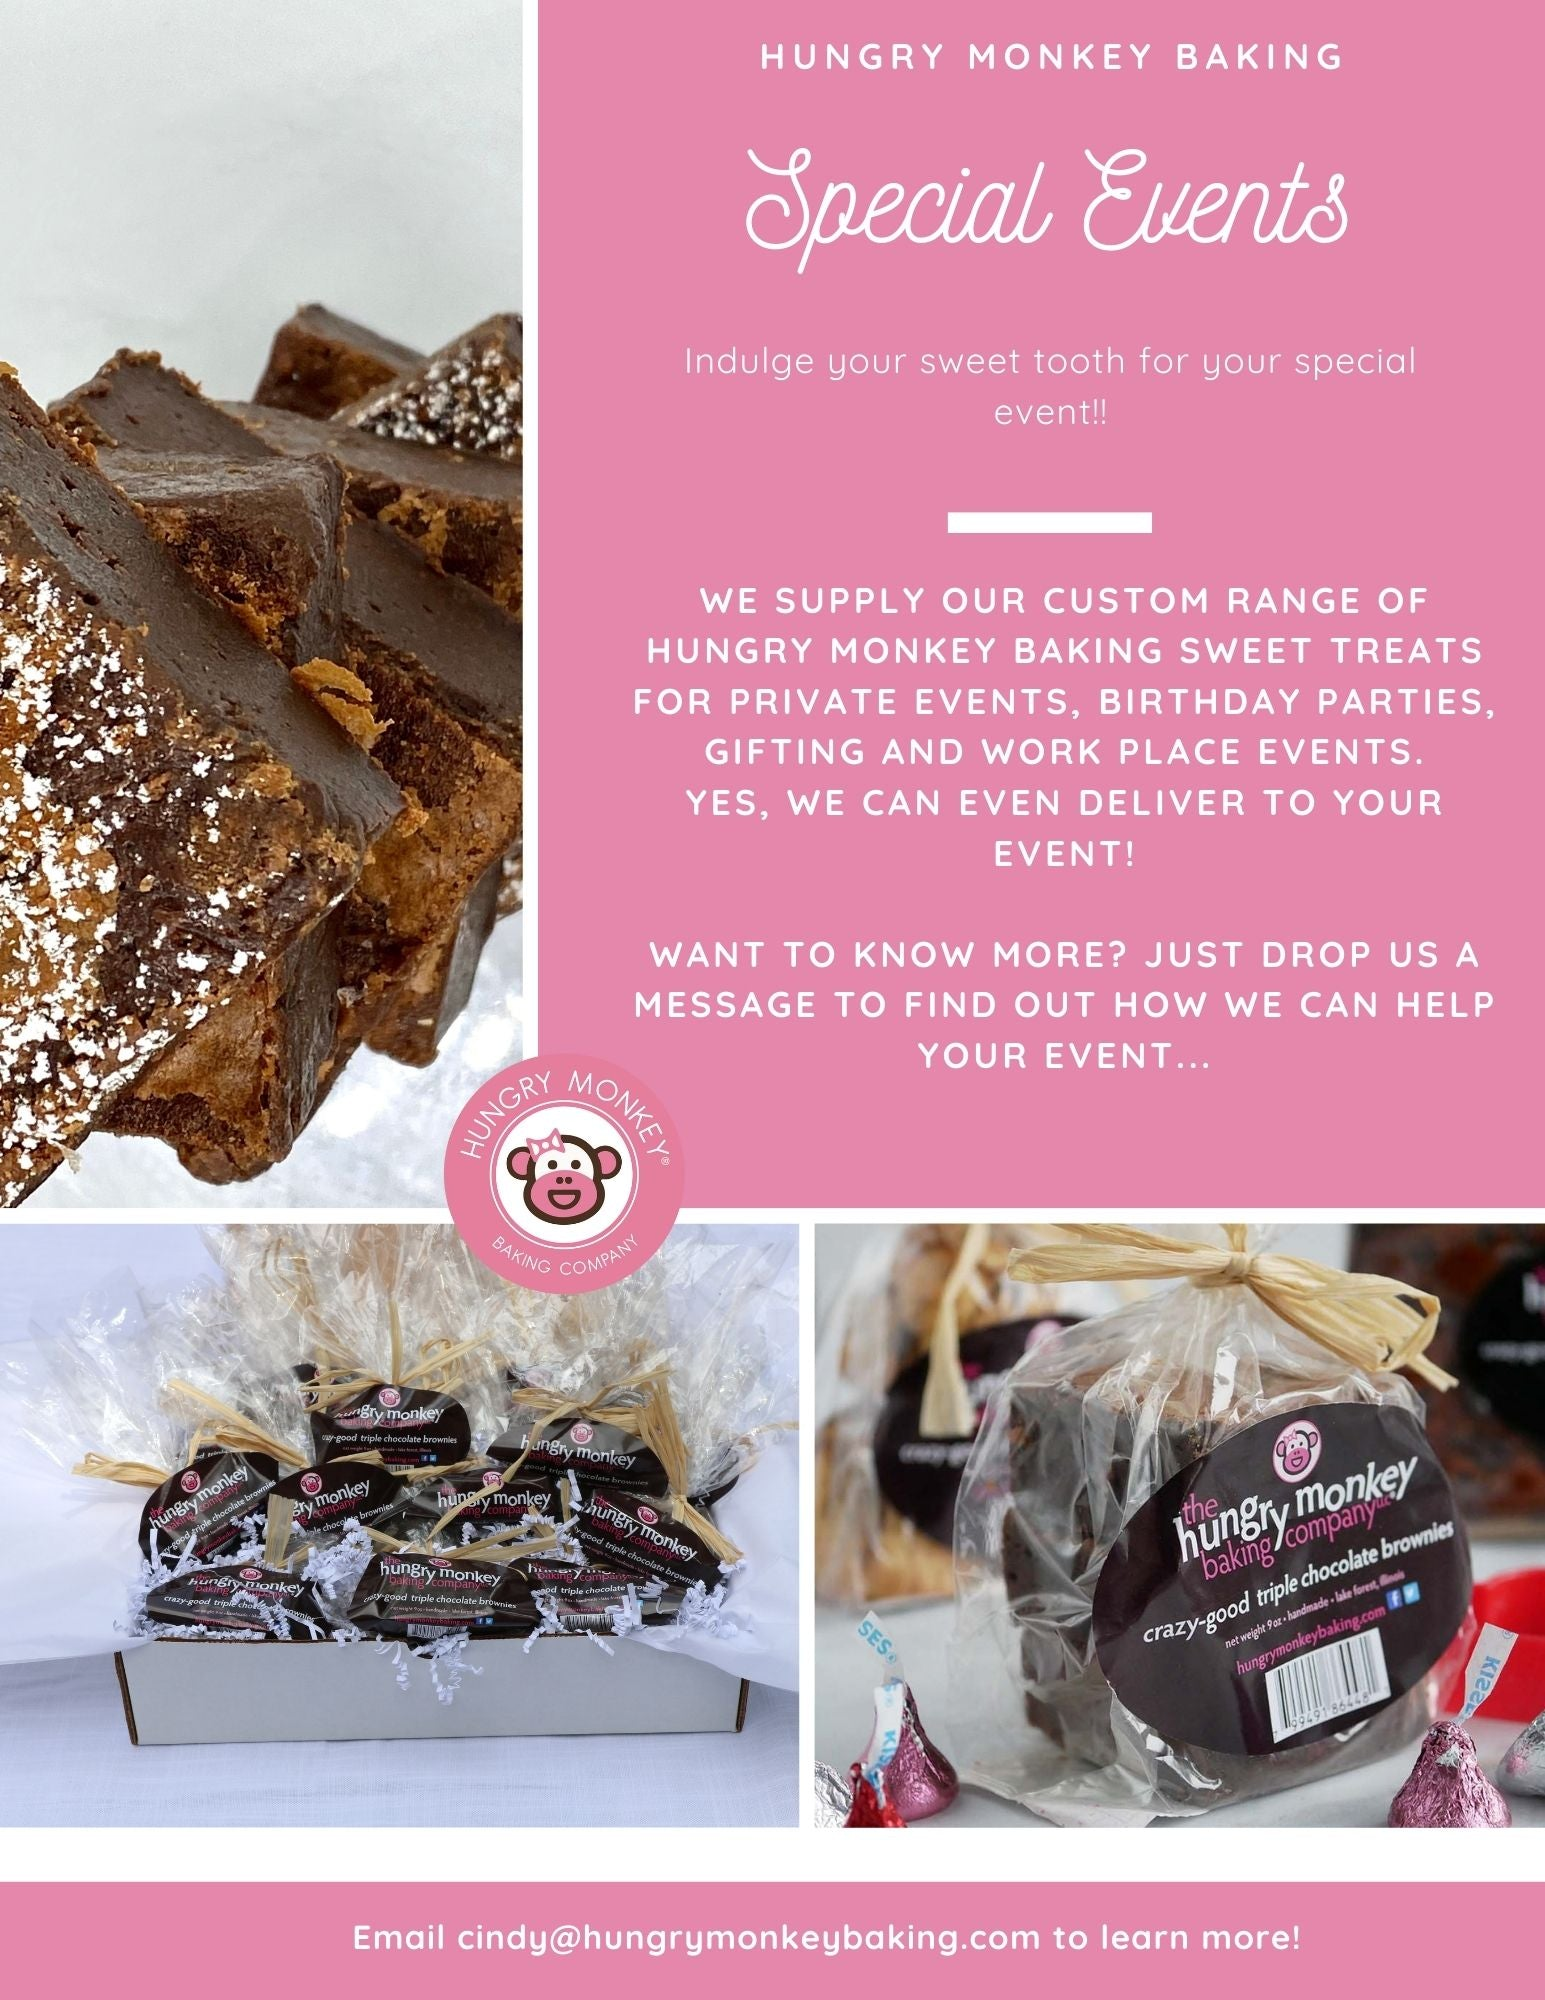 Hungry Monkey Baking Corporate and Special Events